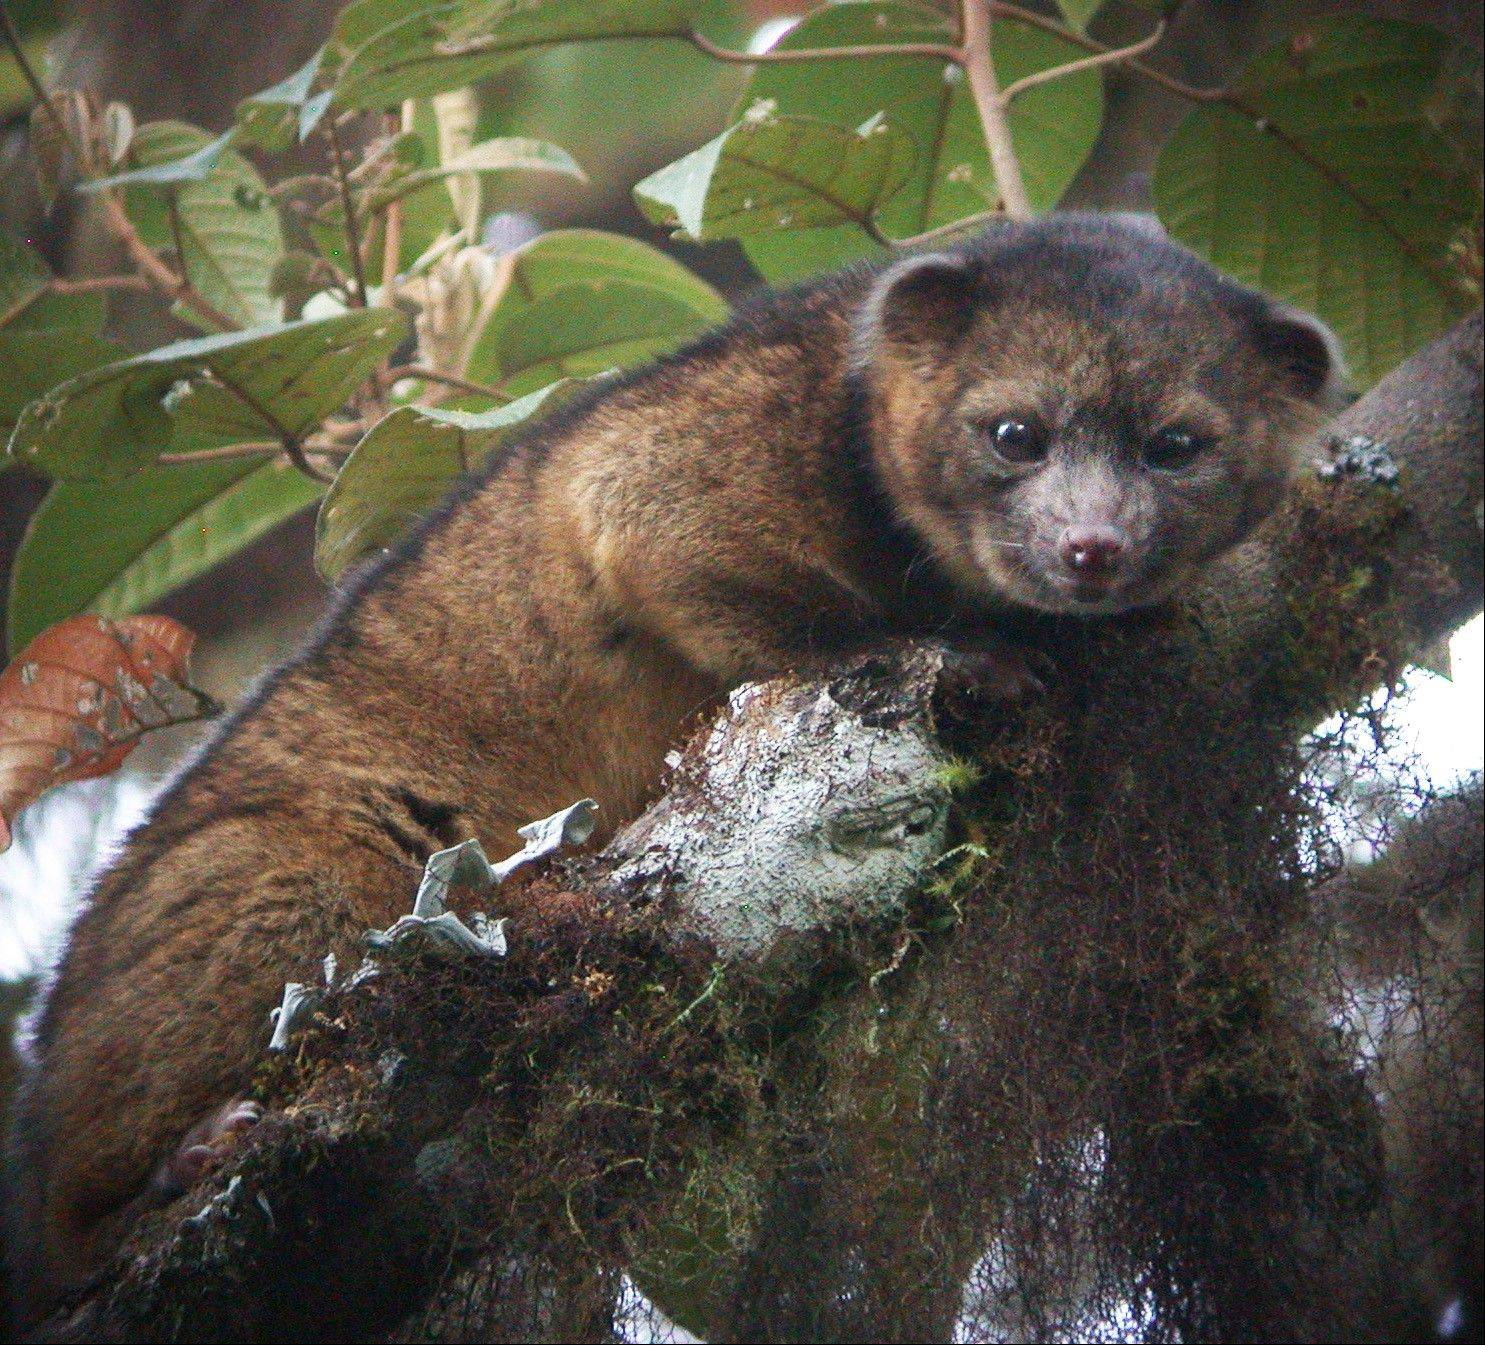 Smithsonian Institution researchers announced Thursday a rare discovery of a new species of mammal called the olinguito. The mammal, which they had previously mistaken for an olingo, is actually a distinct species.